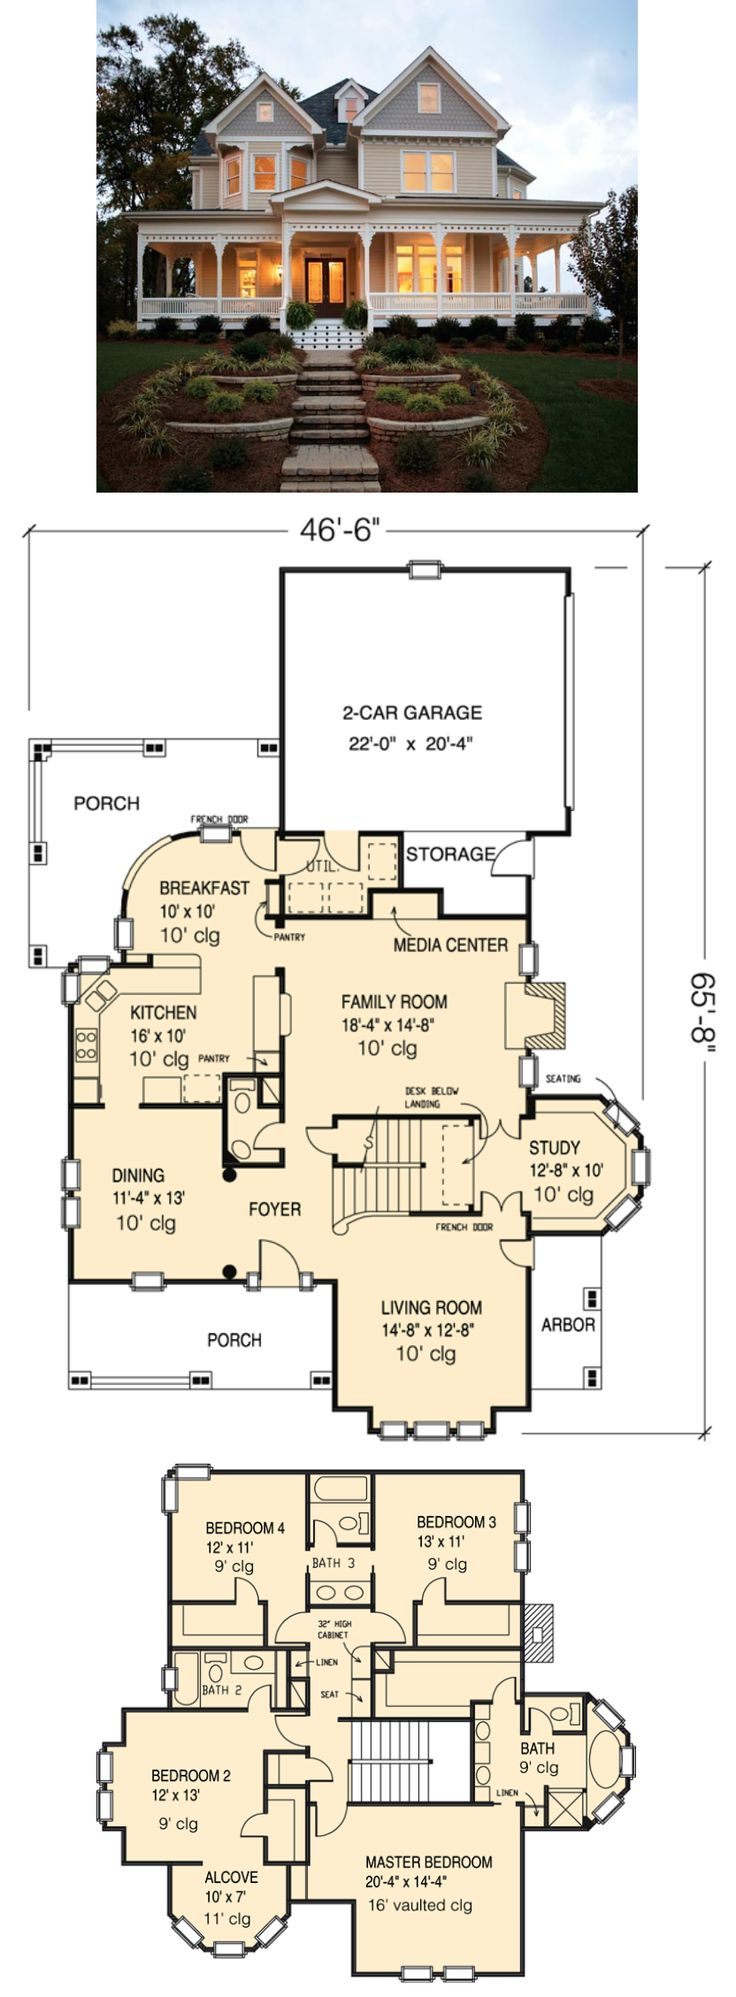 Best 25 basement floor plans ideas on pinterest House plans with basement